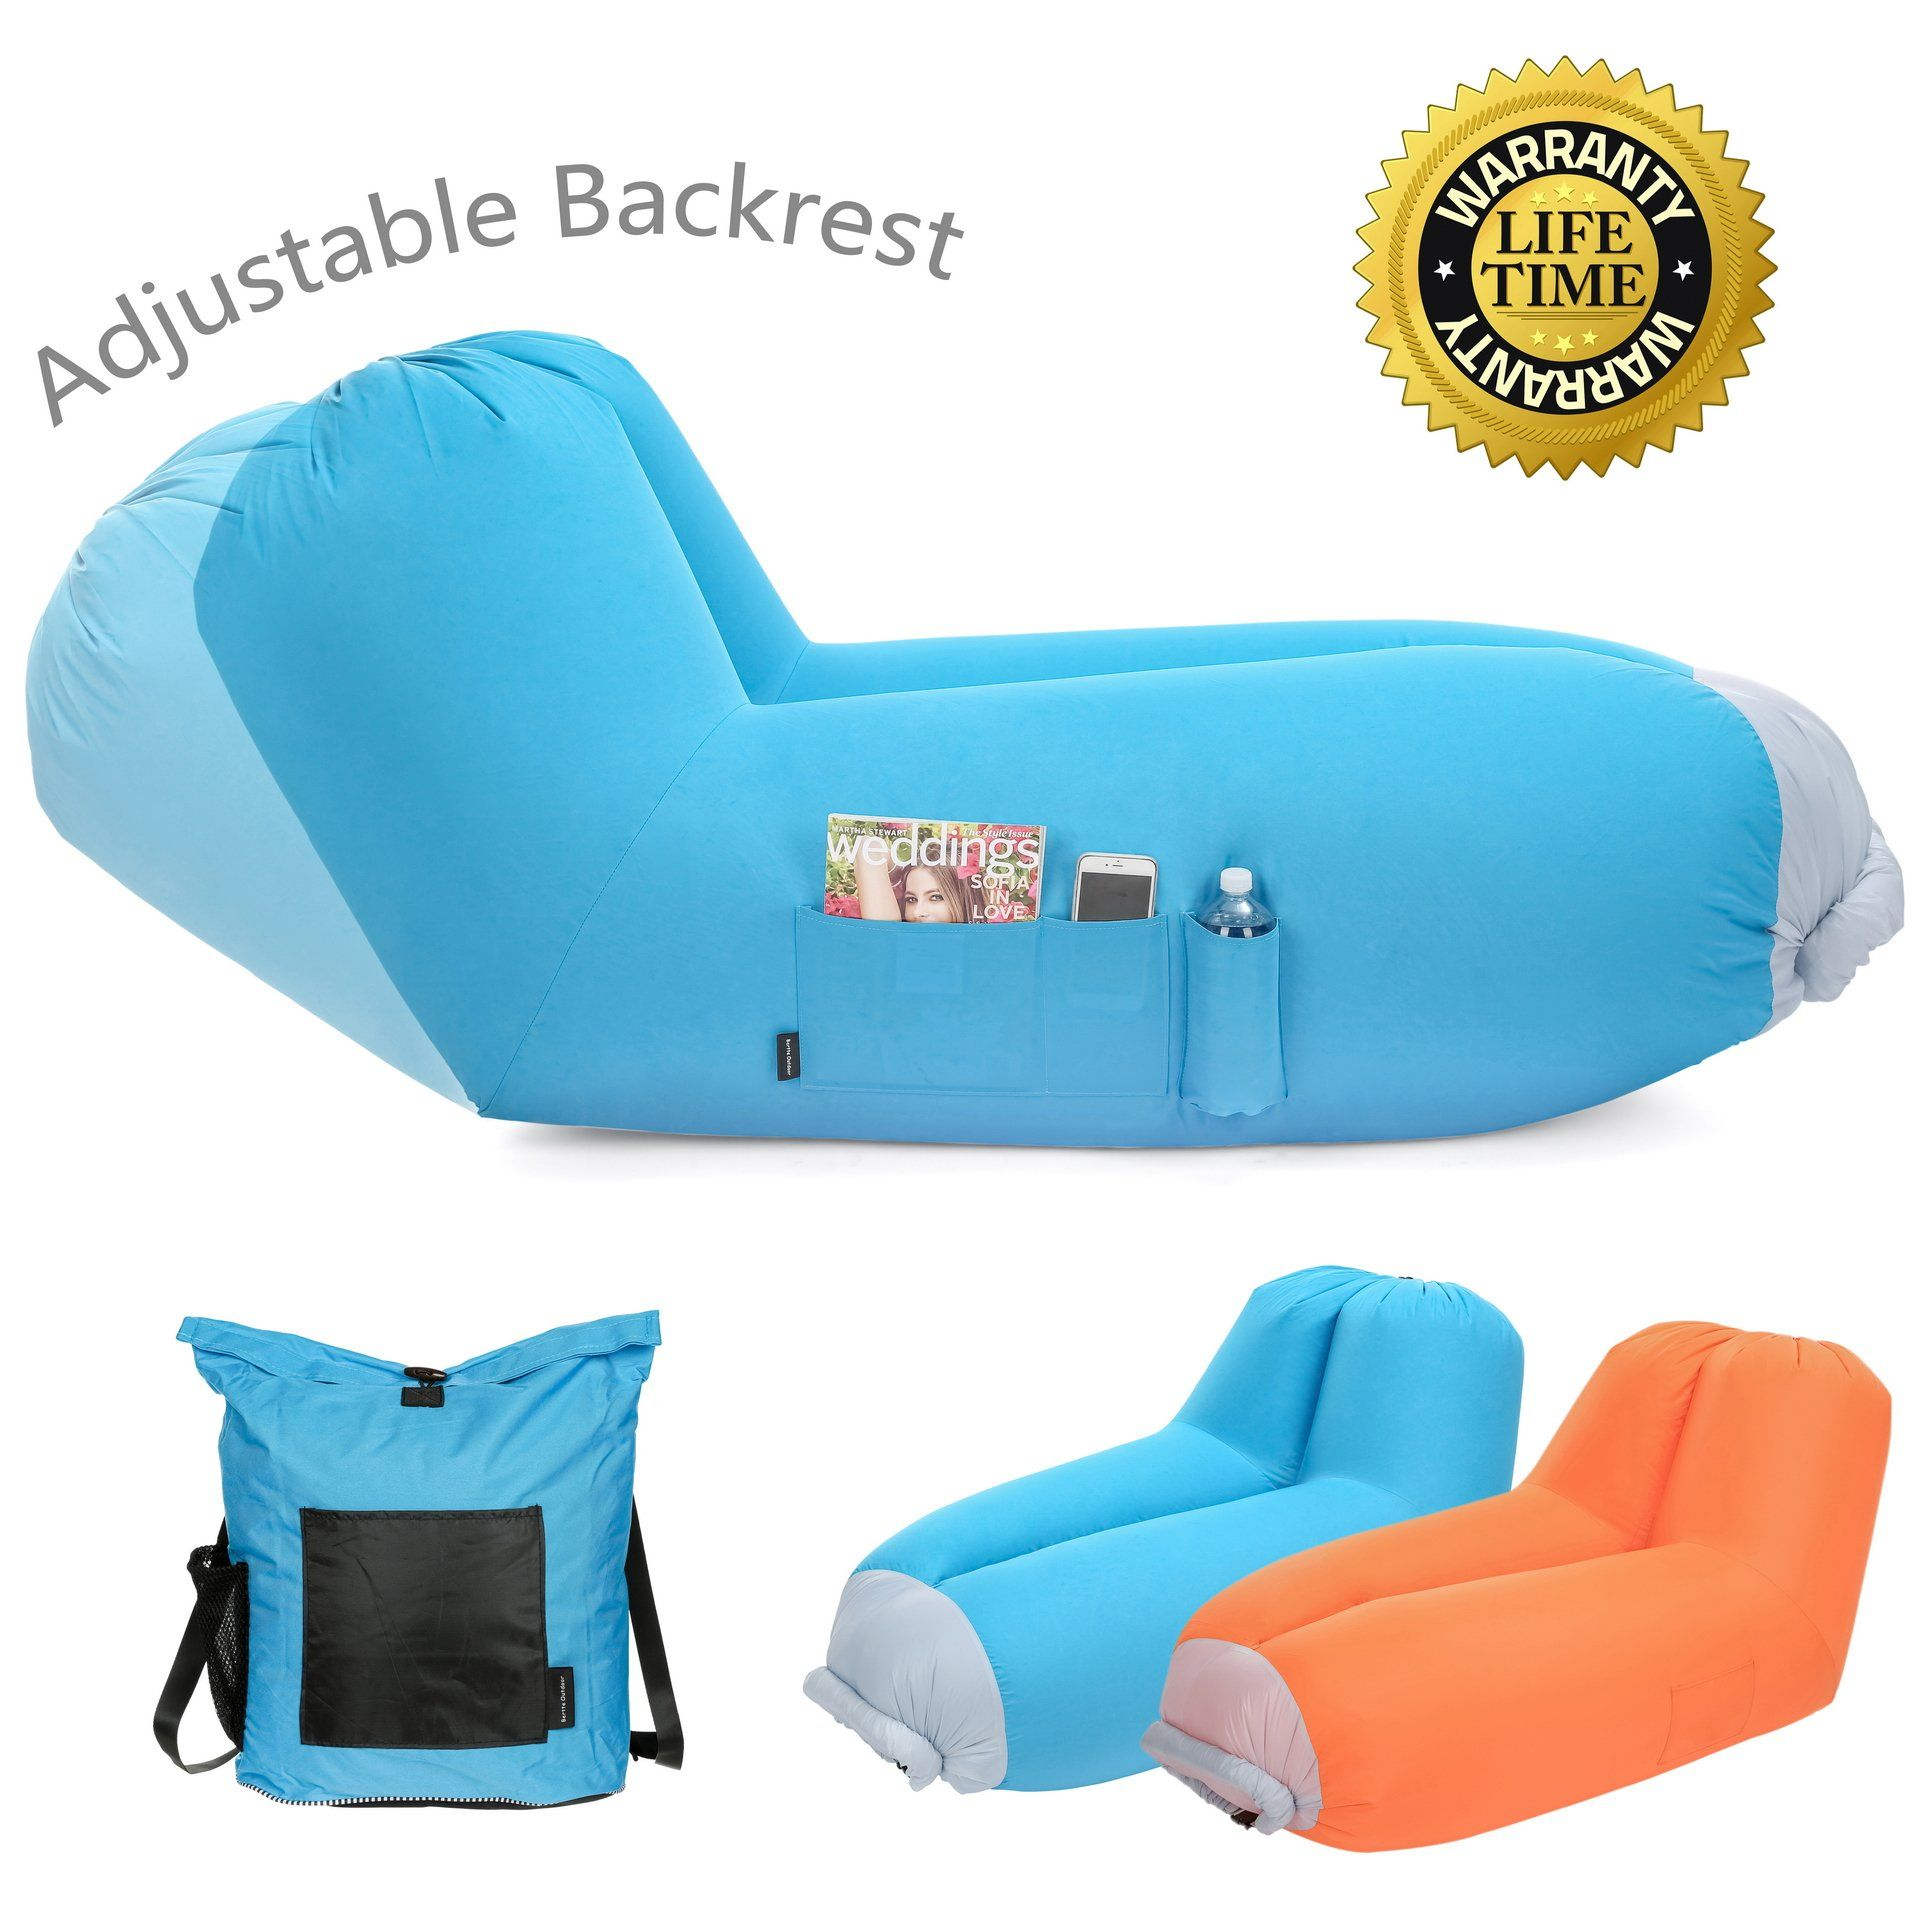 Inflatable Air Lounger Upgrade Adjustable Backrest Air Bed Sofa Perfect For Indoor Outdoor Hangout Air Chair Couch Hammock Air Lounger Lazy Bag Inflatable Sofa